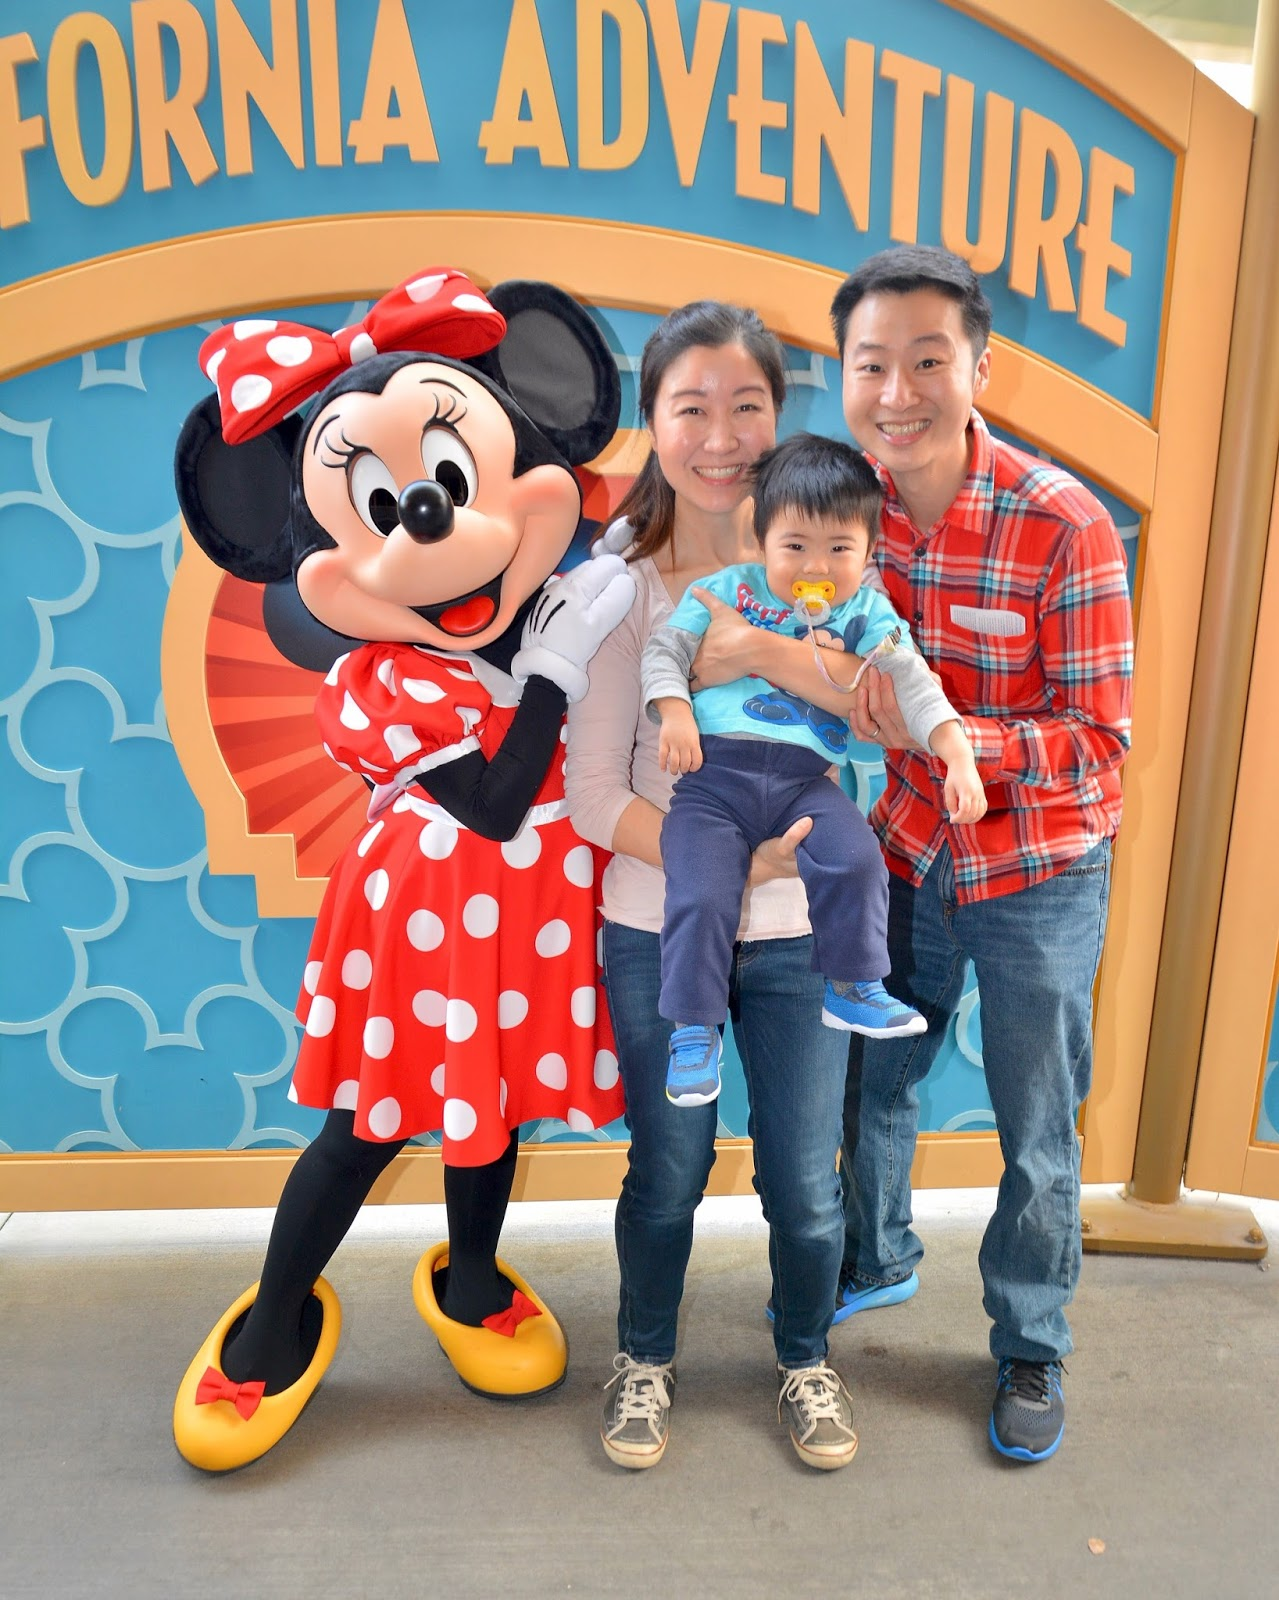 Relentless financial improvement disneyland with our chase disney note your card only allows you to meet a character one time i believe different characters come to the area every 4 hours m4hsunfo